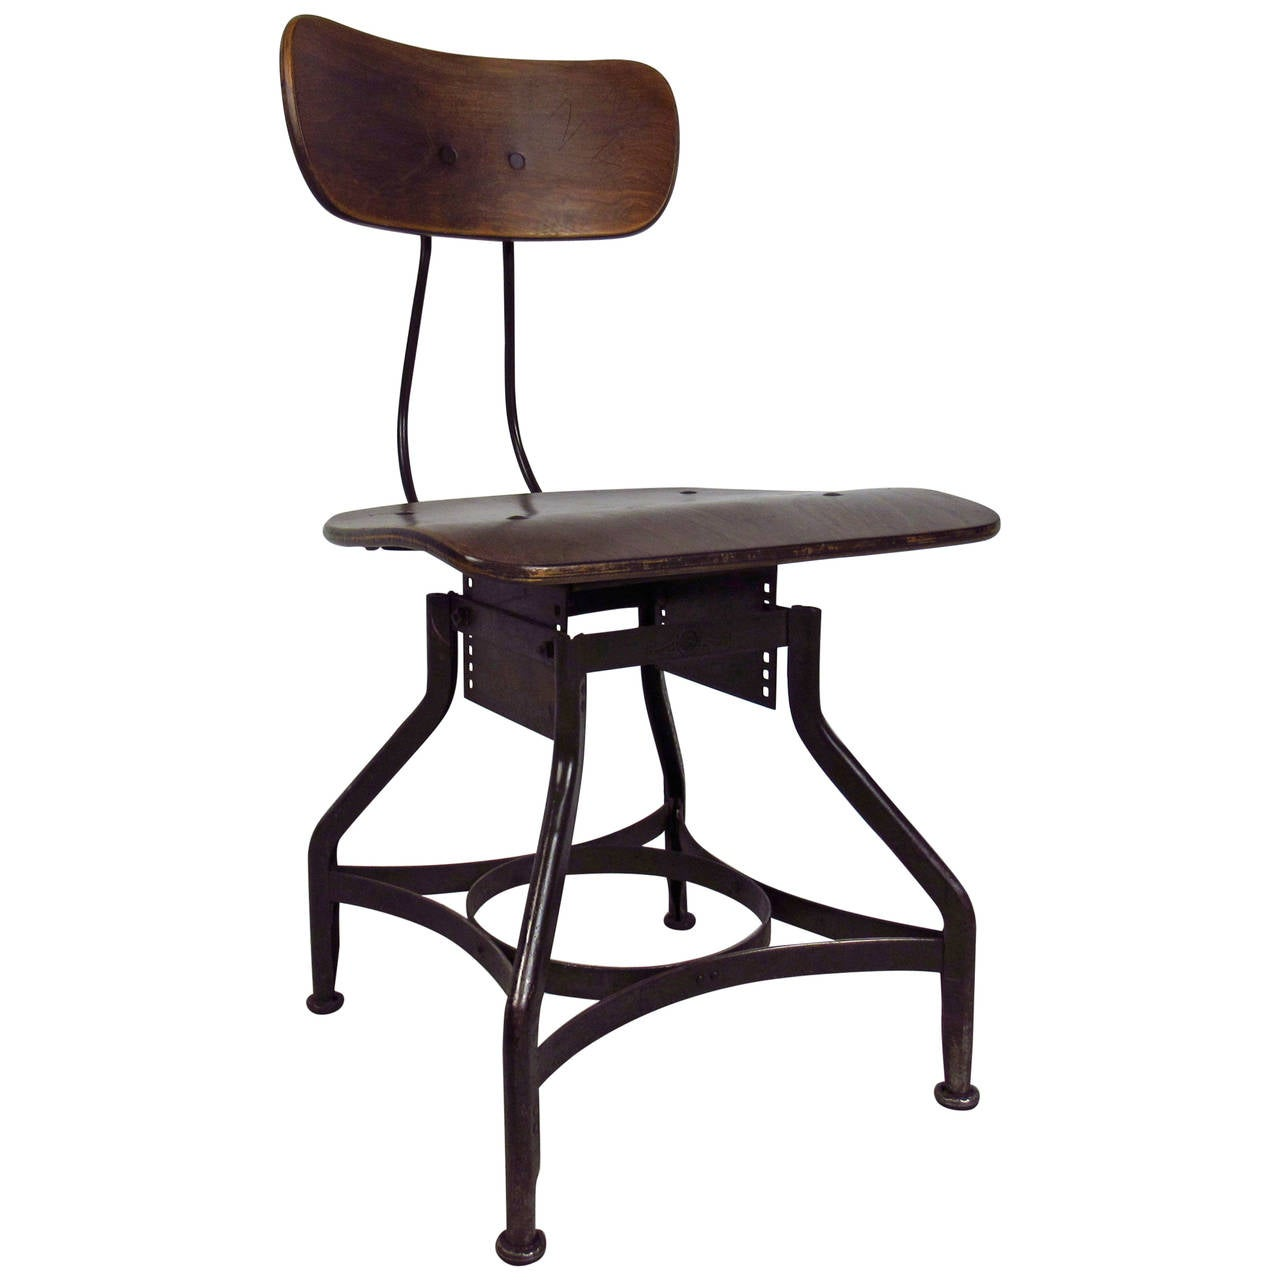 Industrial Desk Chair By Uhl Steel For Toledo Metal Furniture Company At 1stdibs